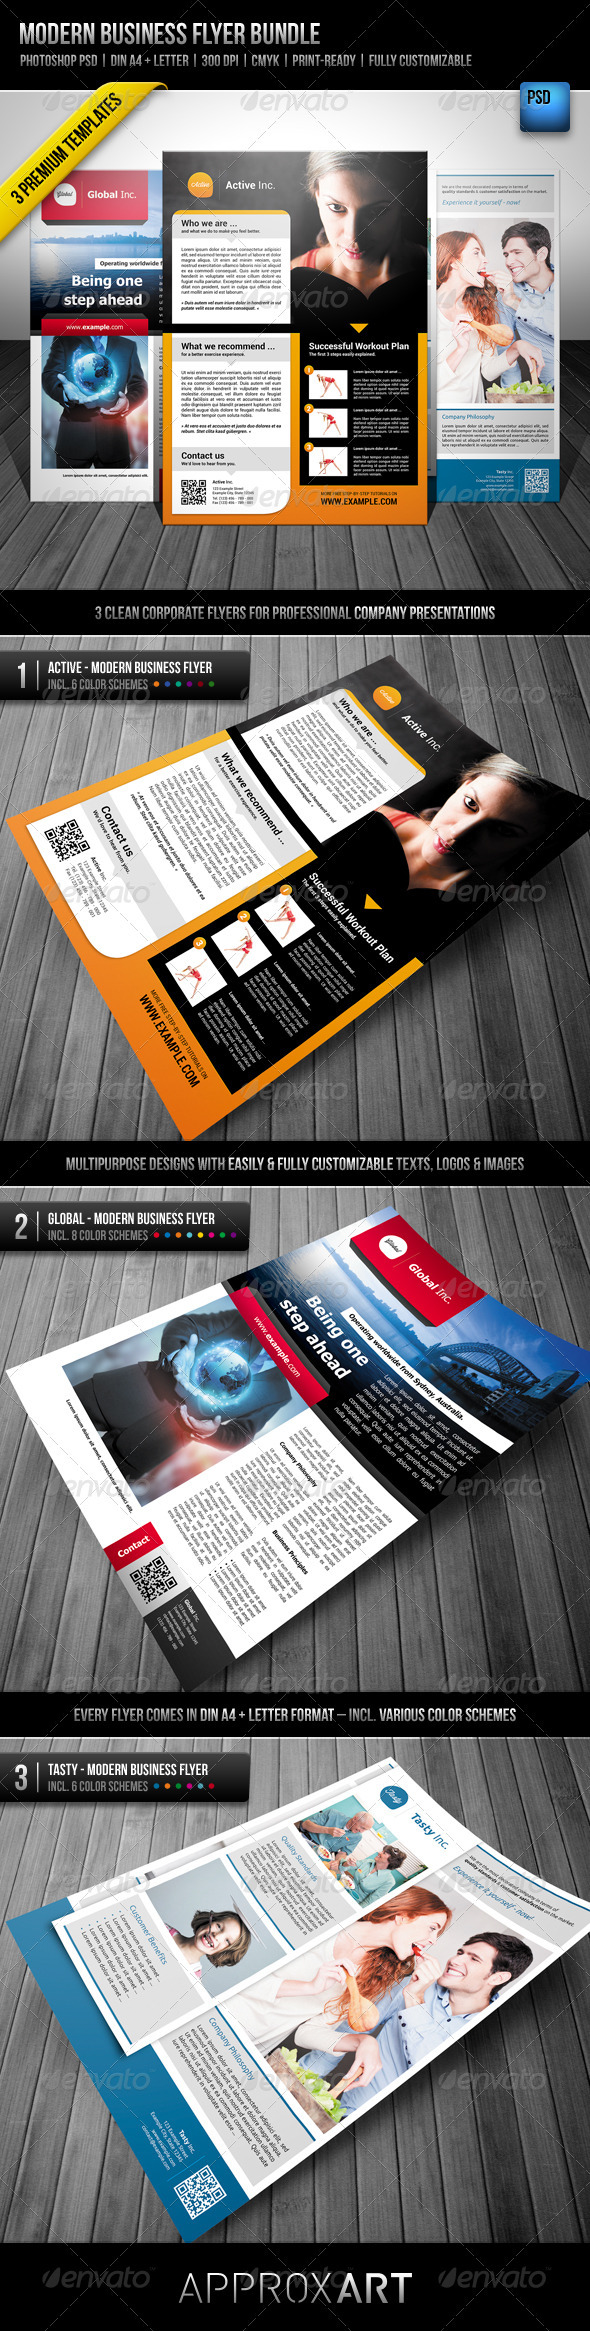 Modern Business Flyer Bundle - Corporate Flyers